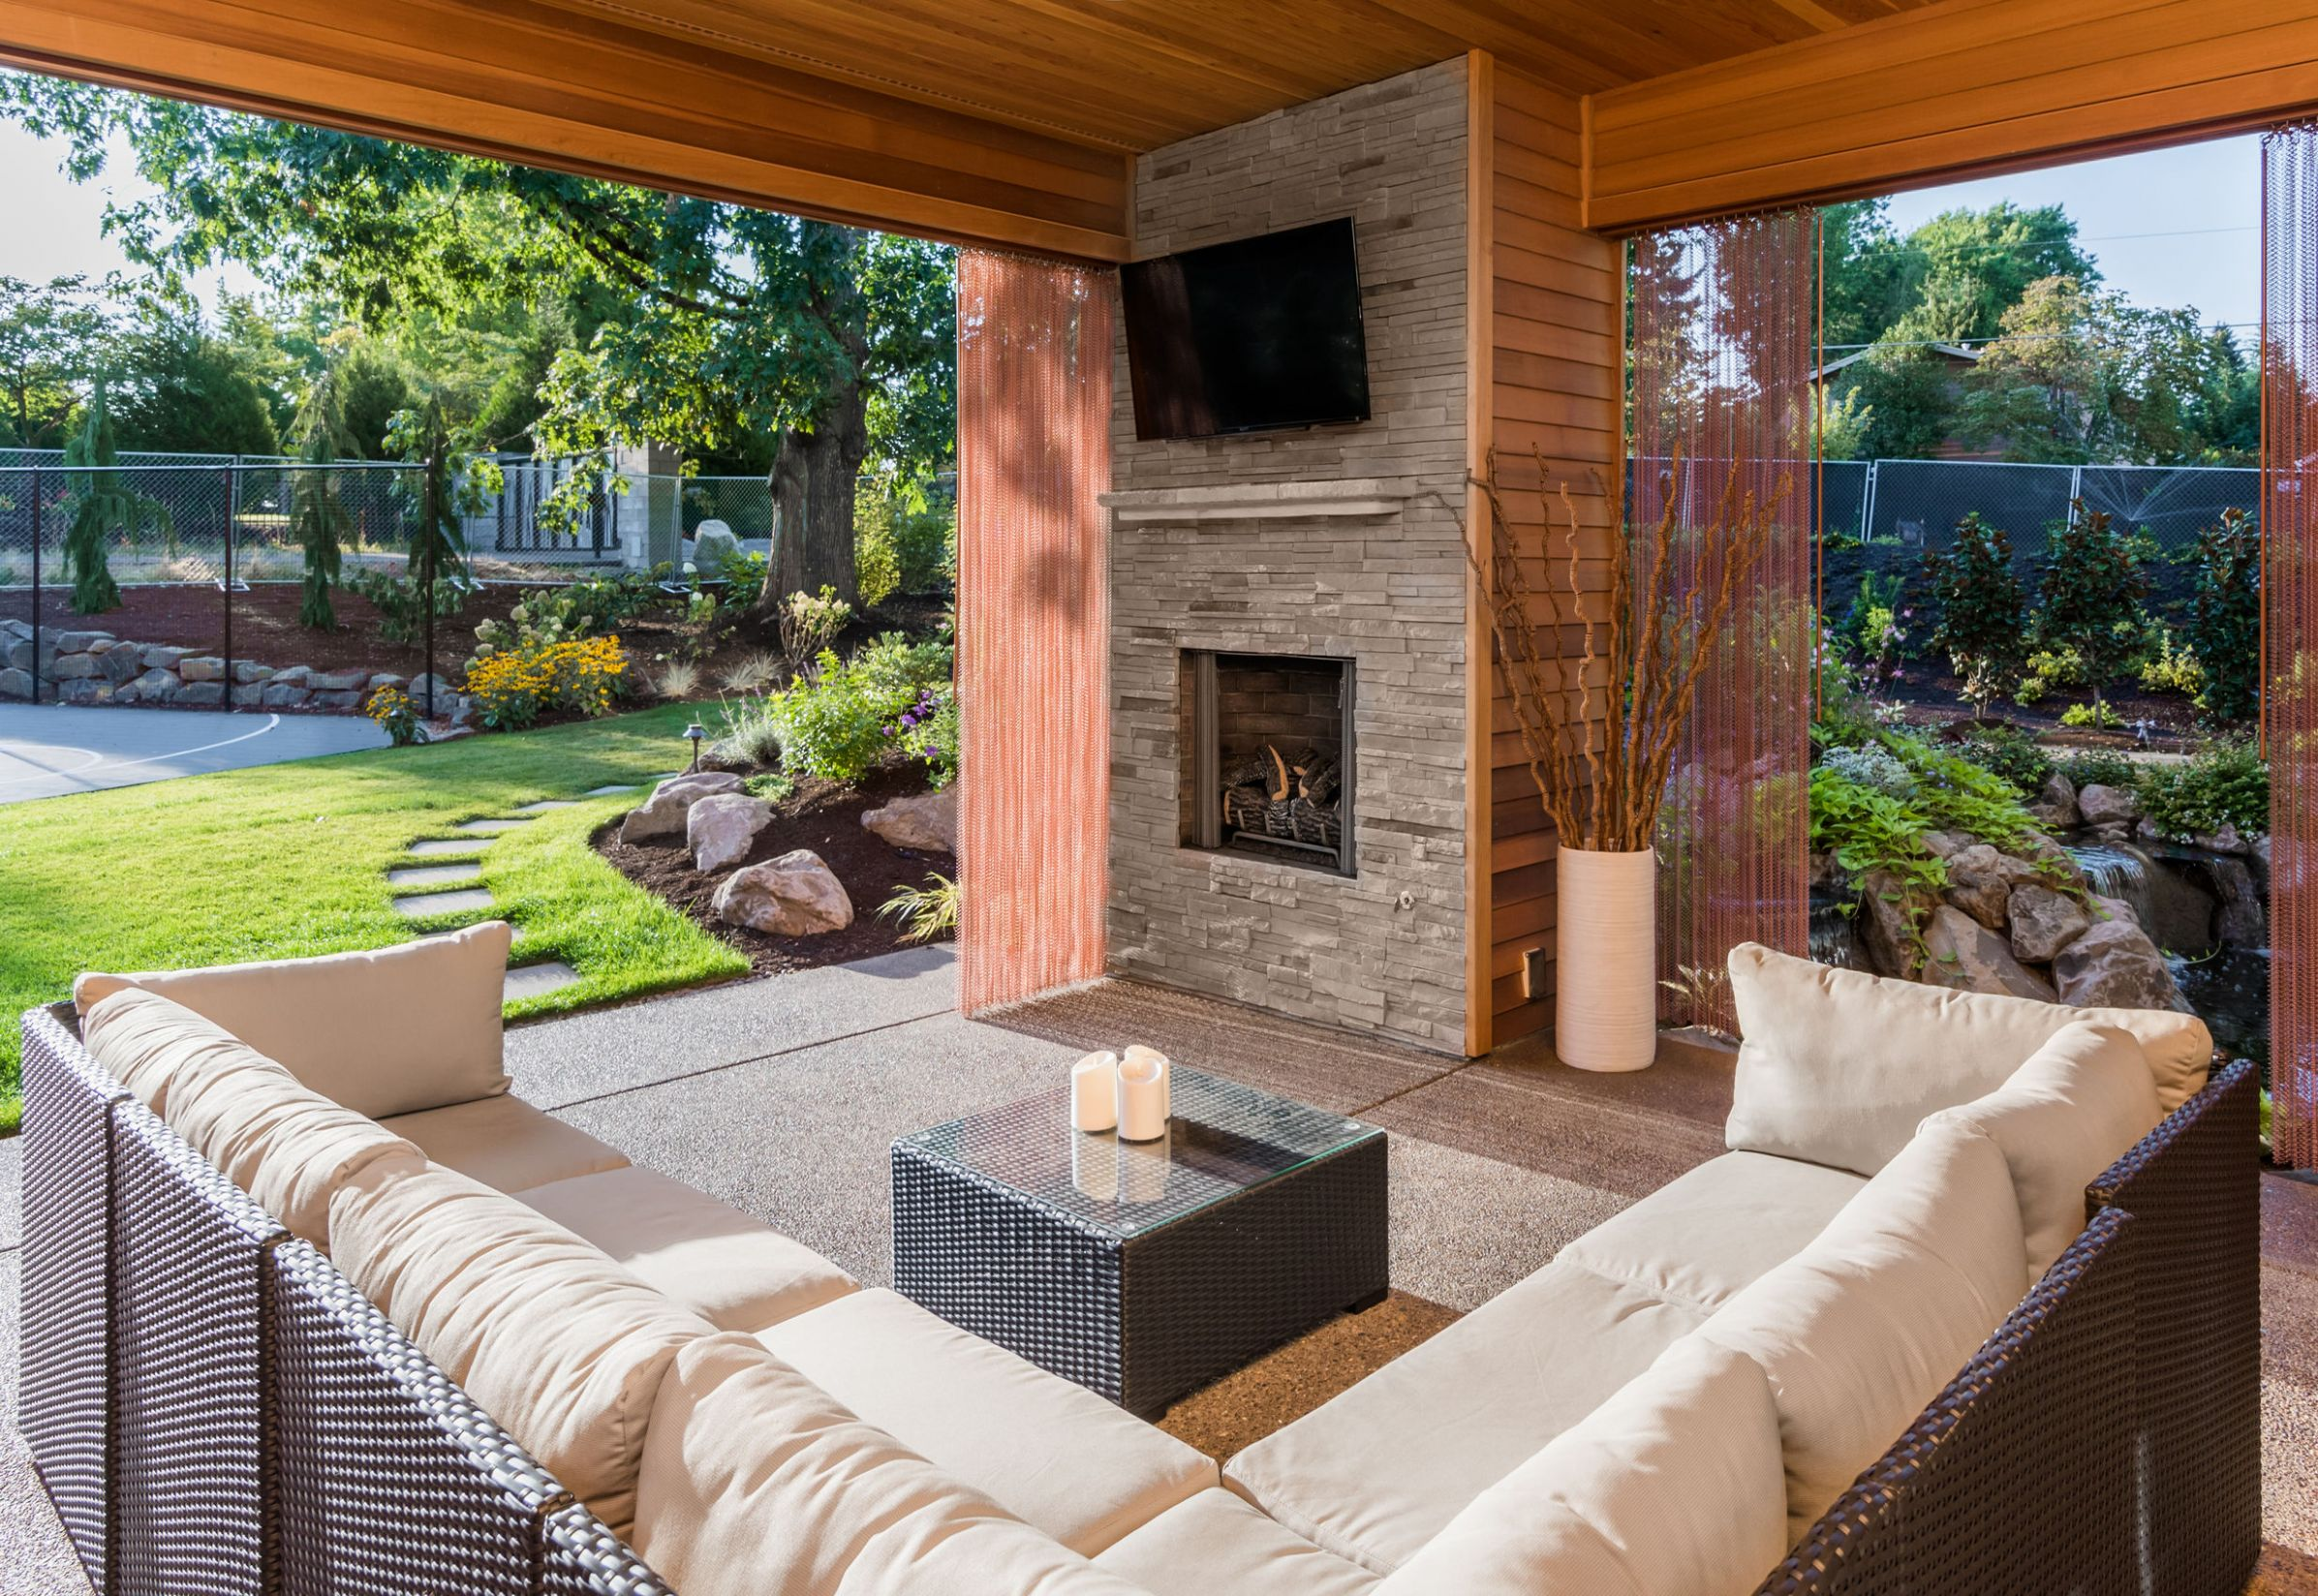 Backyard Ideas for Your New Home | Hayden Homes Blog